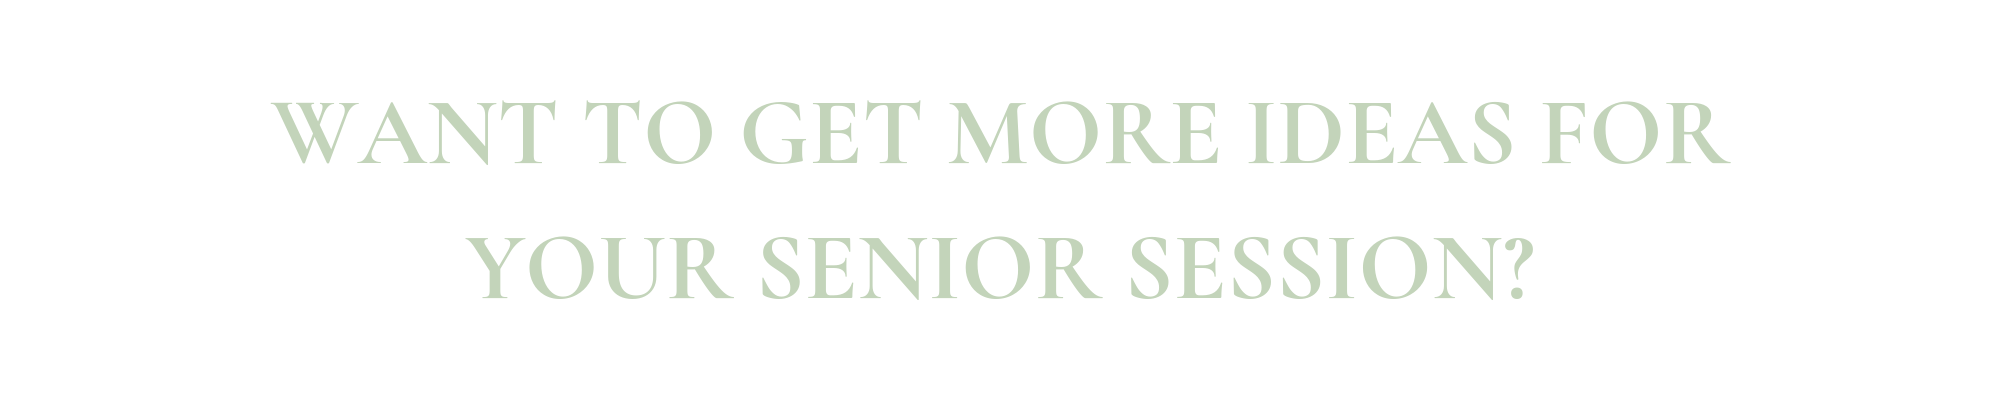 MORE IDEAS FOR SENIOR SESSION.png